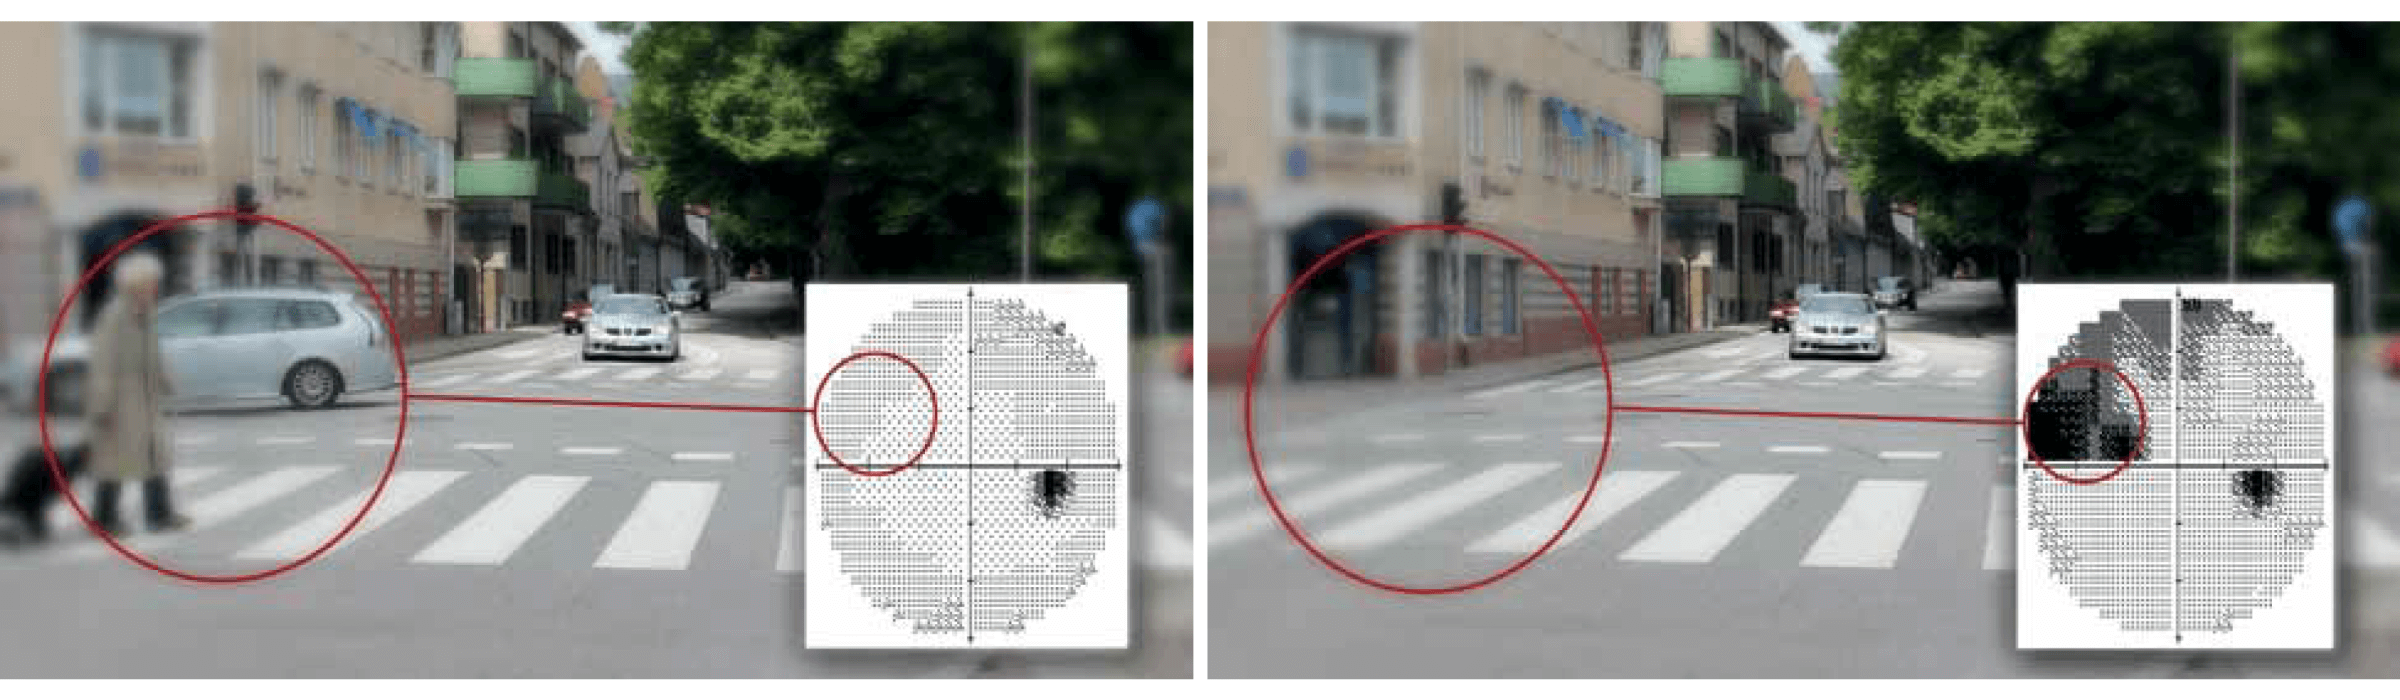 Side-by-side images one showing a person crossing a pedestrian crossing the other showing the filling-in-effect caused by glaucomatous visual field loss. On the second image you can see the pedestrian crossing but not the person crossing it.